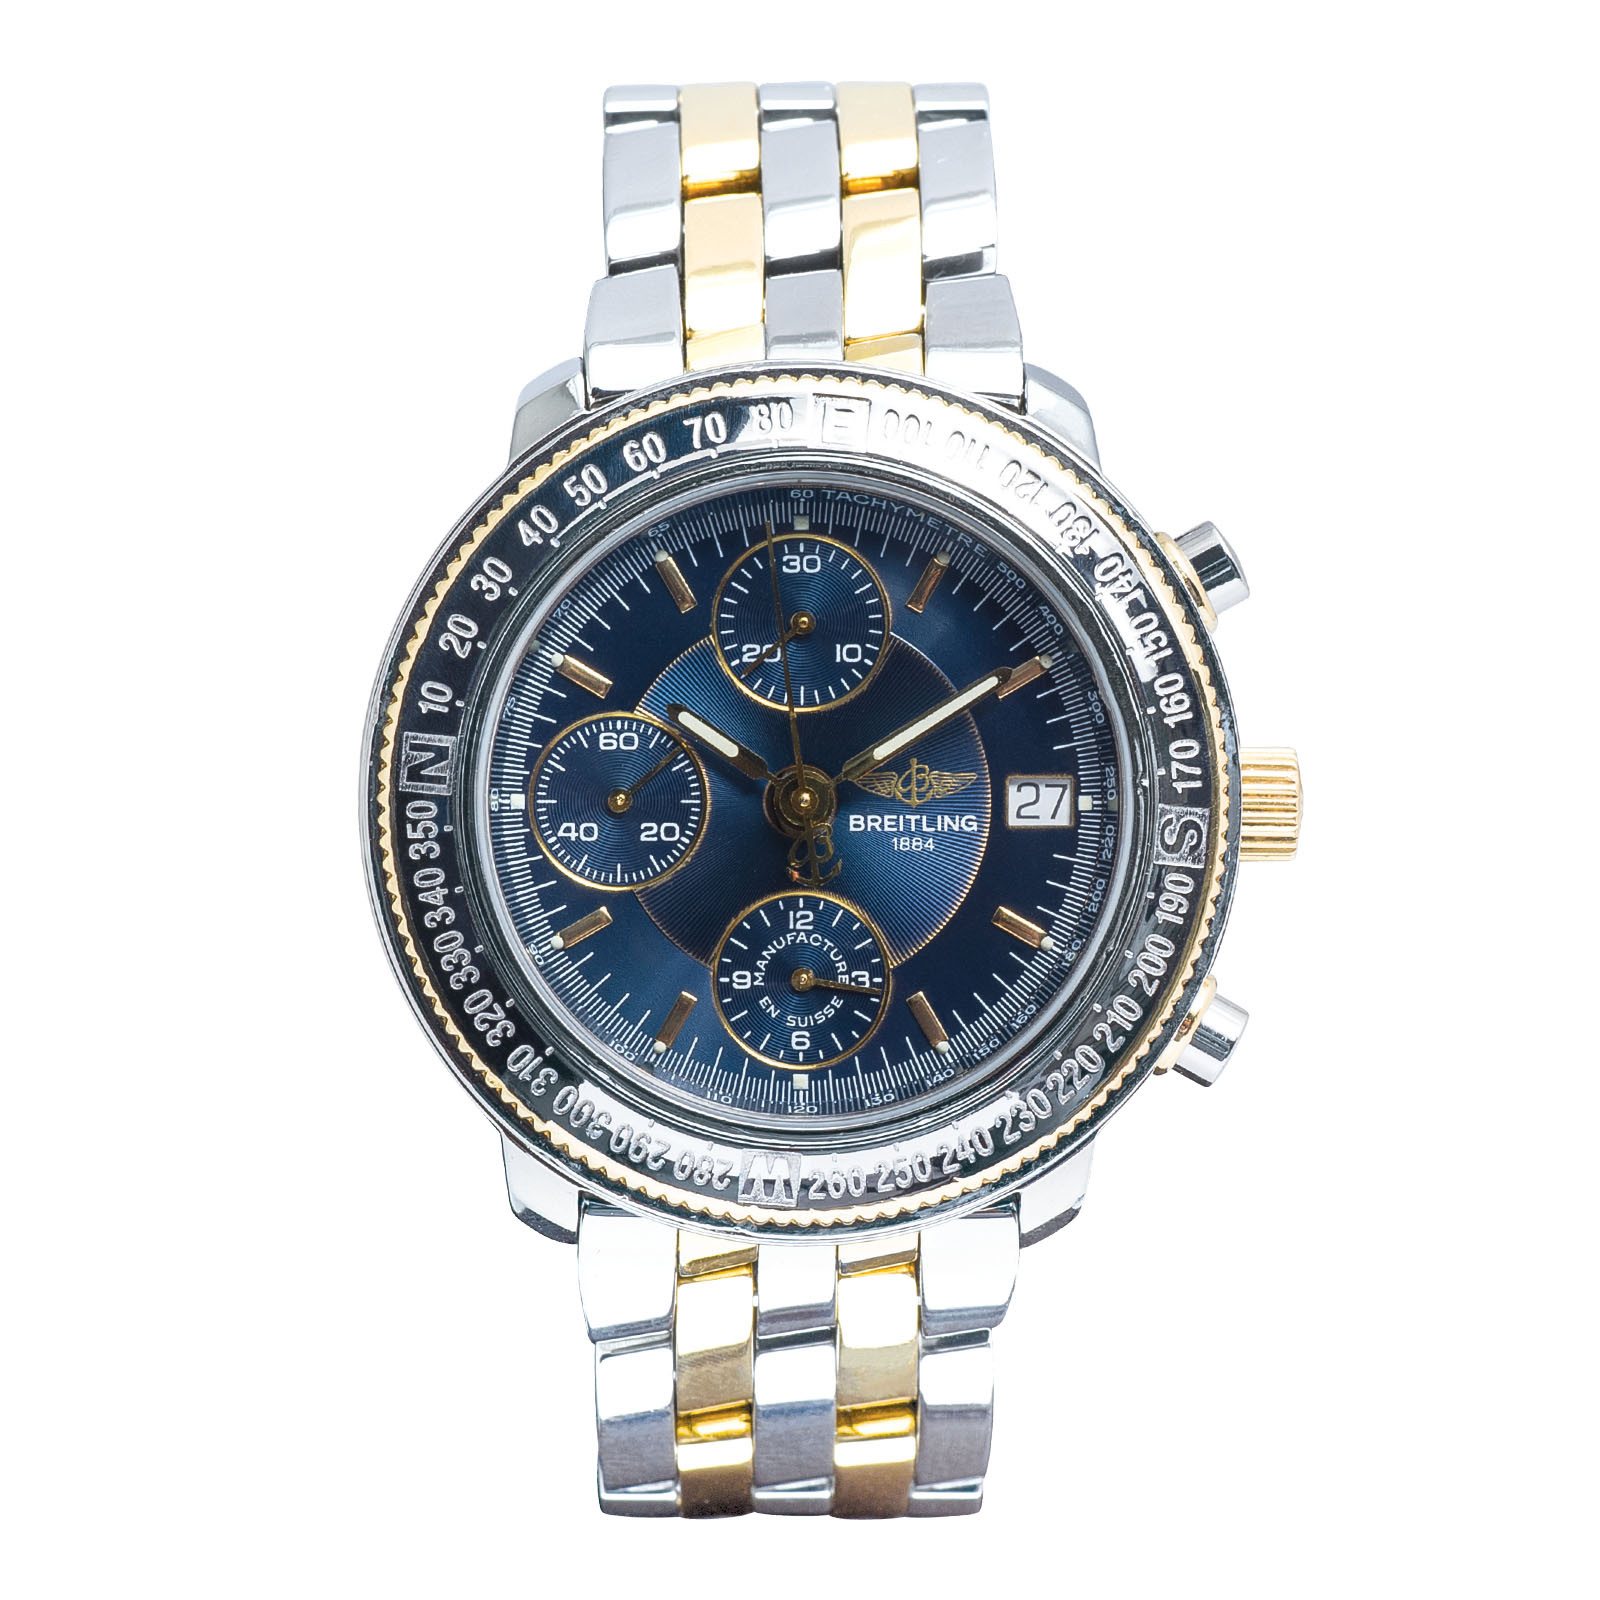 Pre-Owned Men's Breitling Limited Edition Astromat